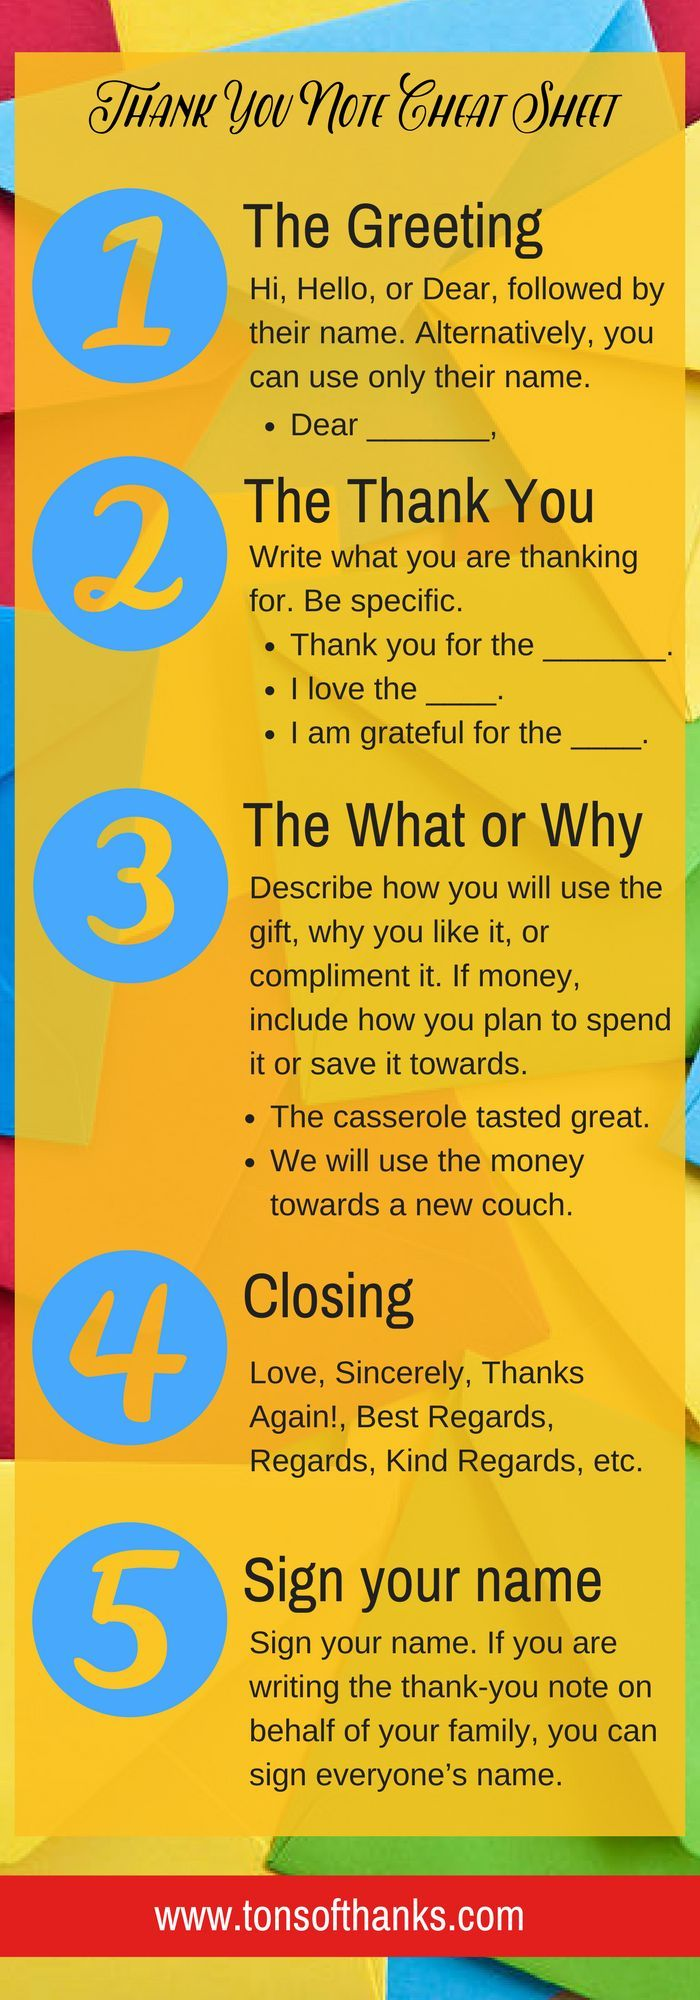 Thank you note cheat sheet! Use these 5 steps to write most thank you notes.